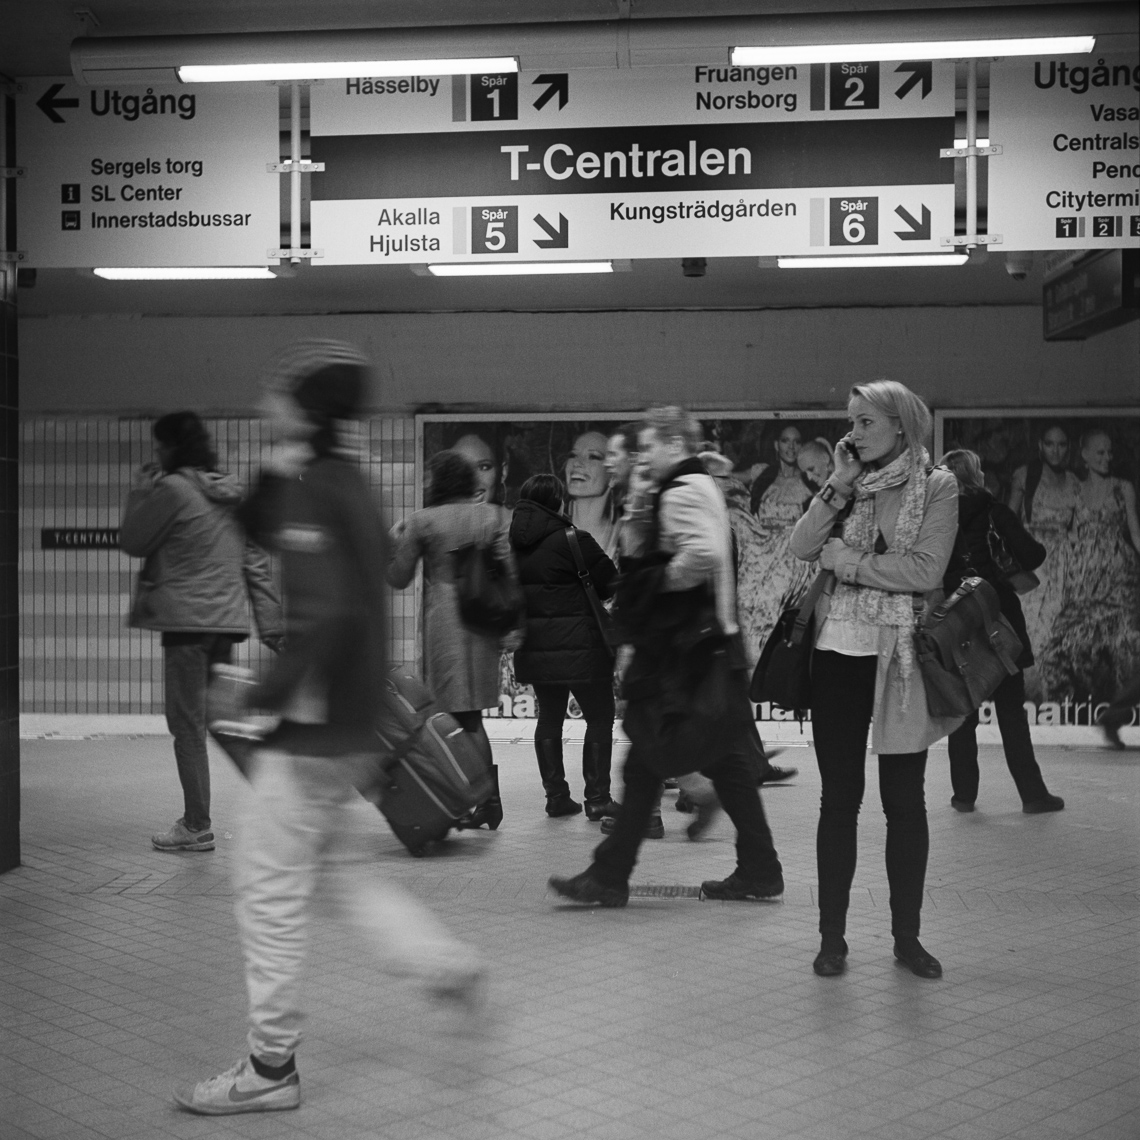 People-at-t-centralen